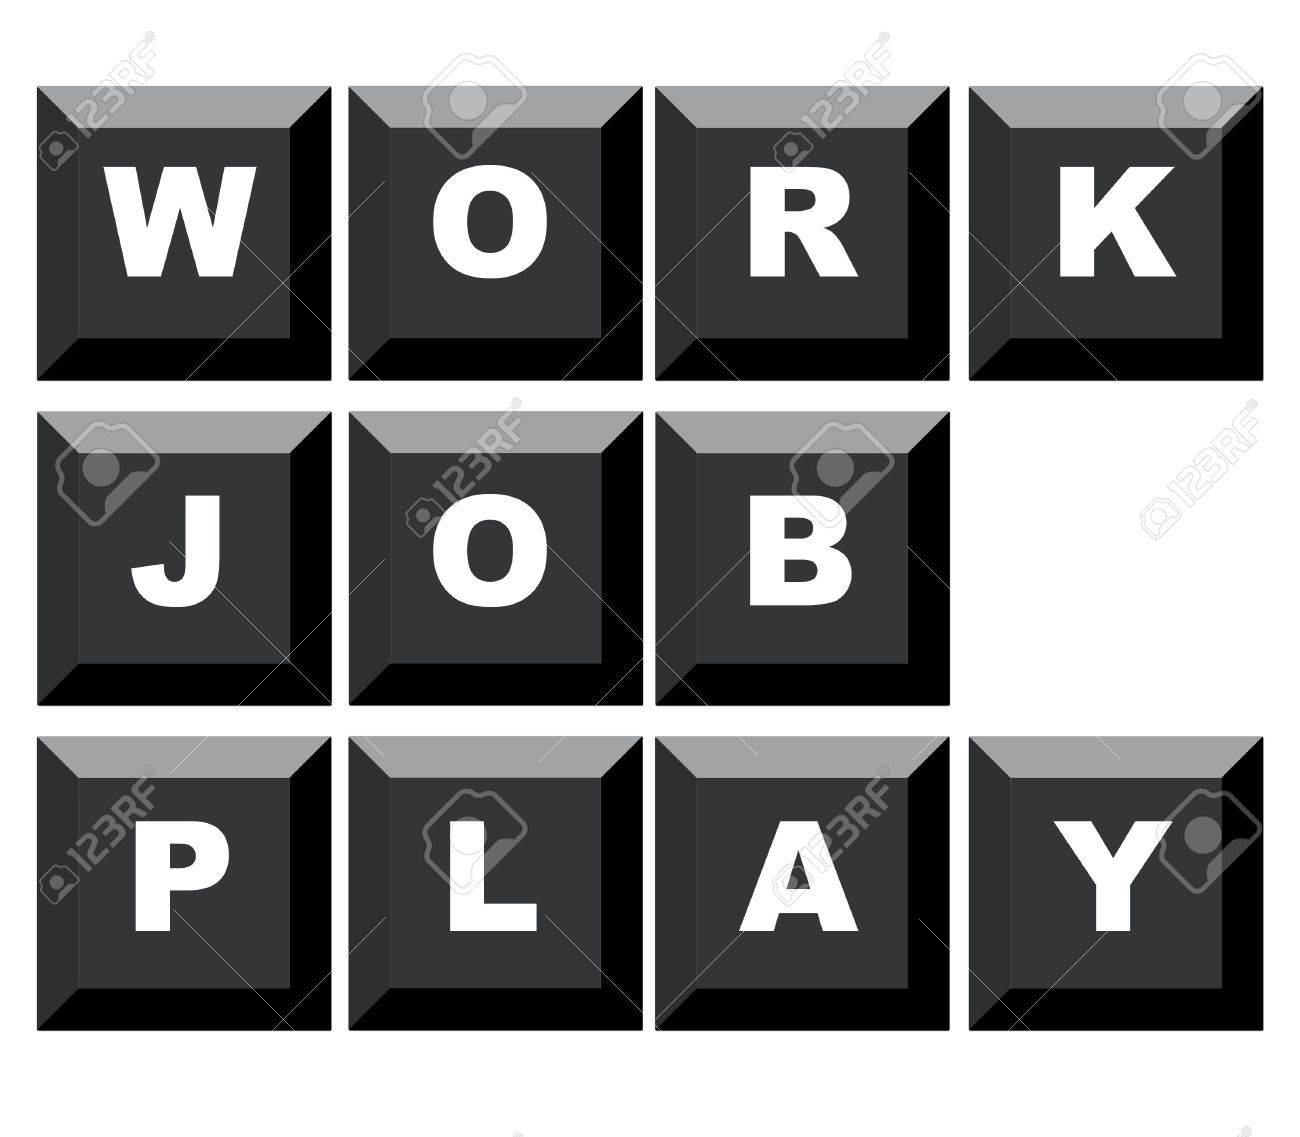 Words work, job and play spelled on black computer keyboard, isolated on white background. Stock Photo - 5741818